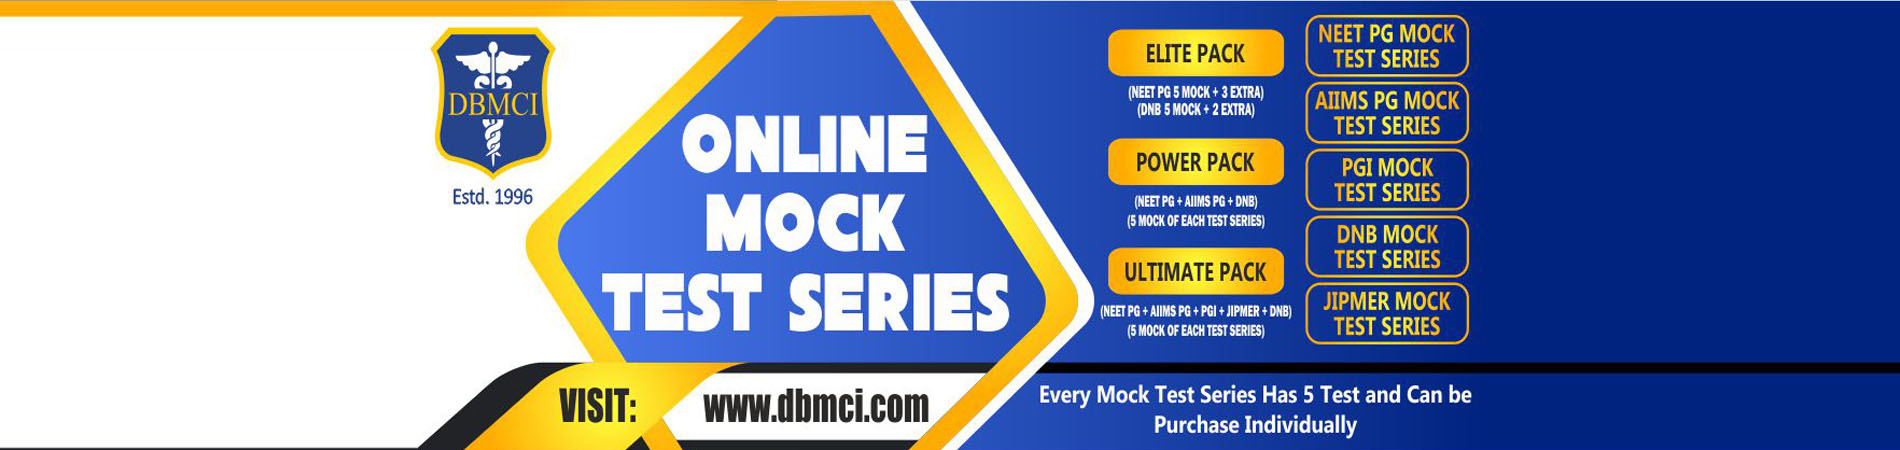 Online Mock Test Series